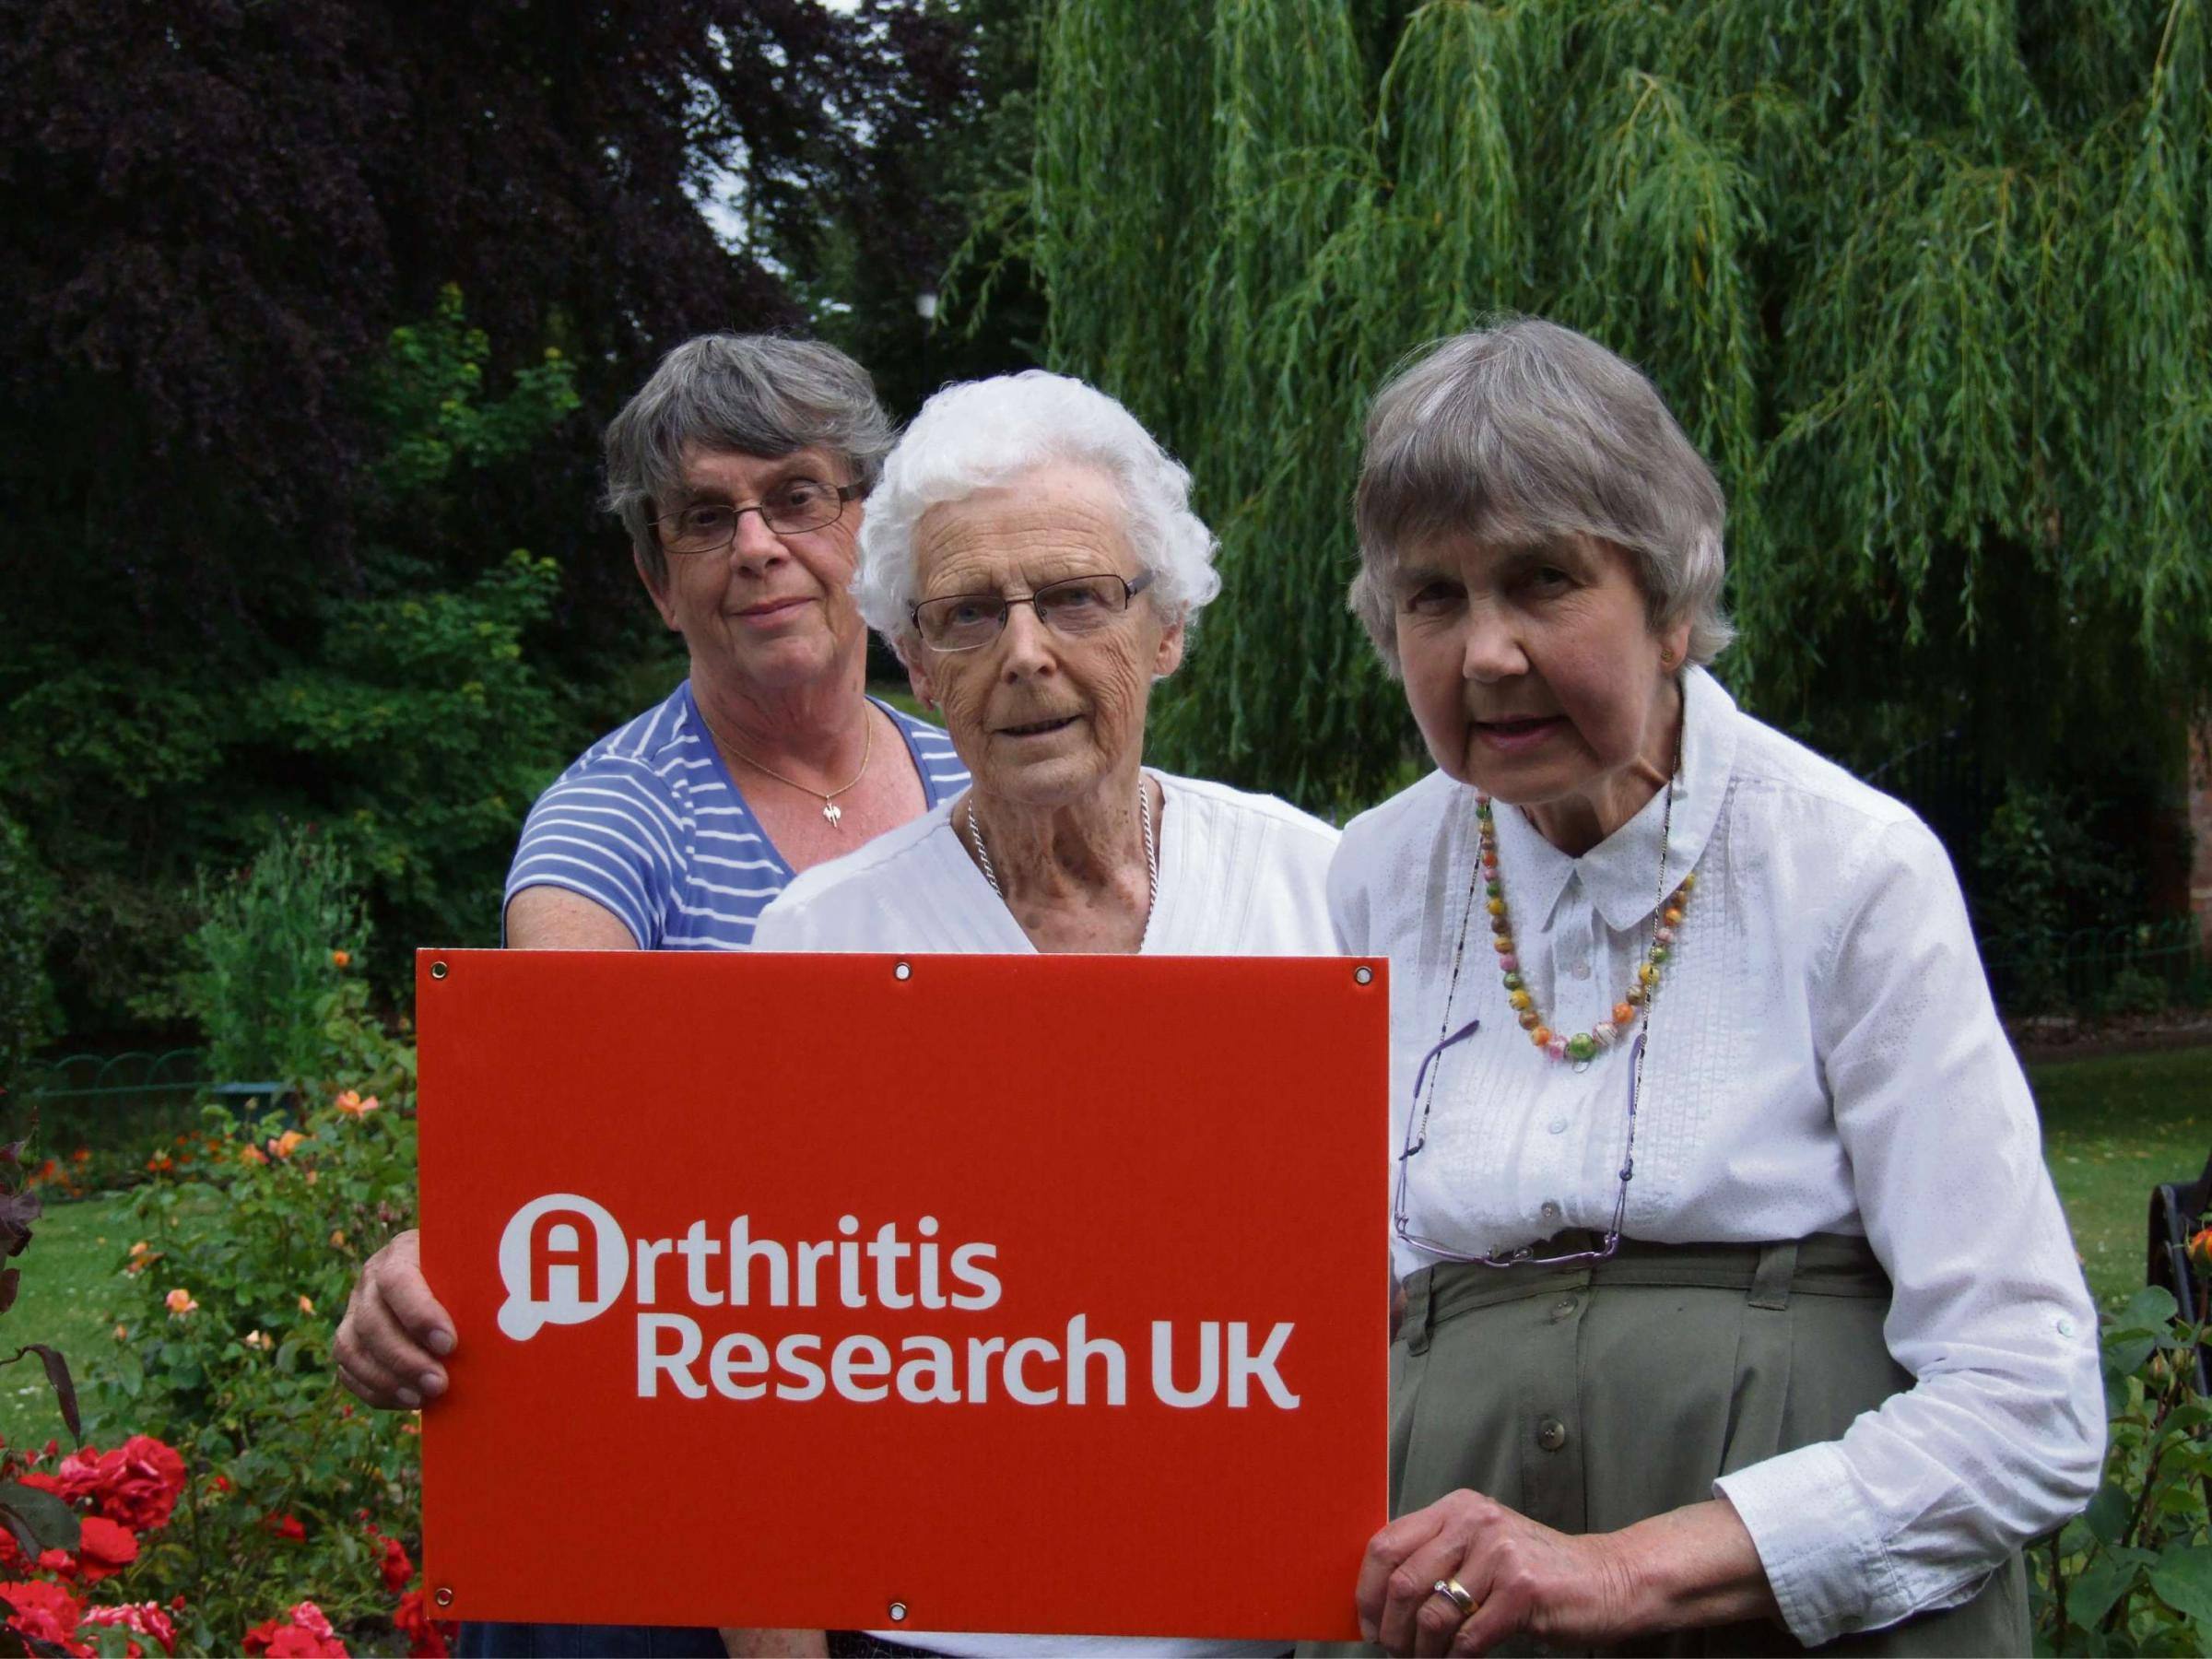 Myrtle Middleton, Judith Hereford and Jennie Francis, respectively the ex-chairman, treasurer and secretary of the old Hereford branch of Arthritis Research UK.